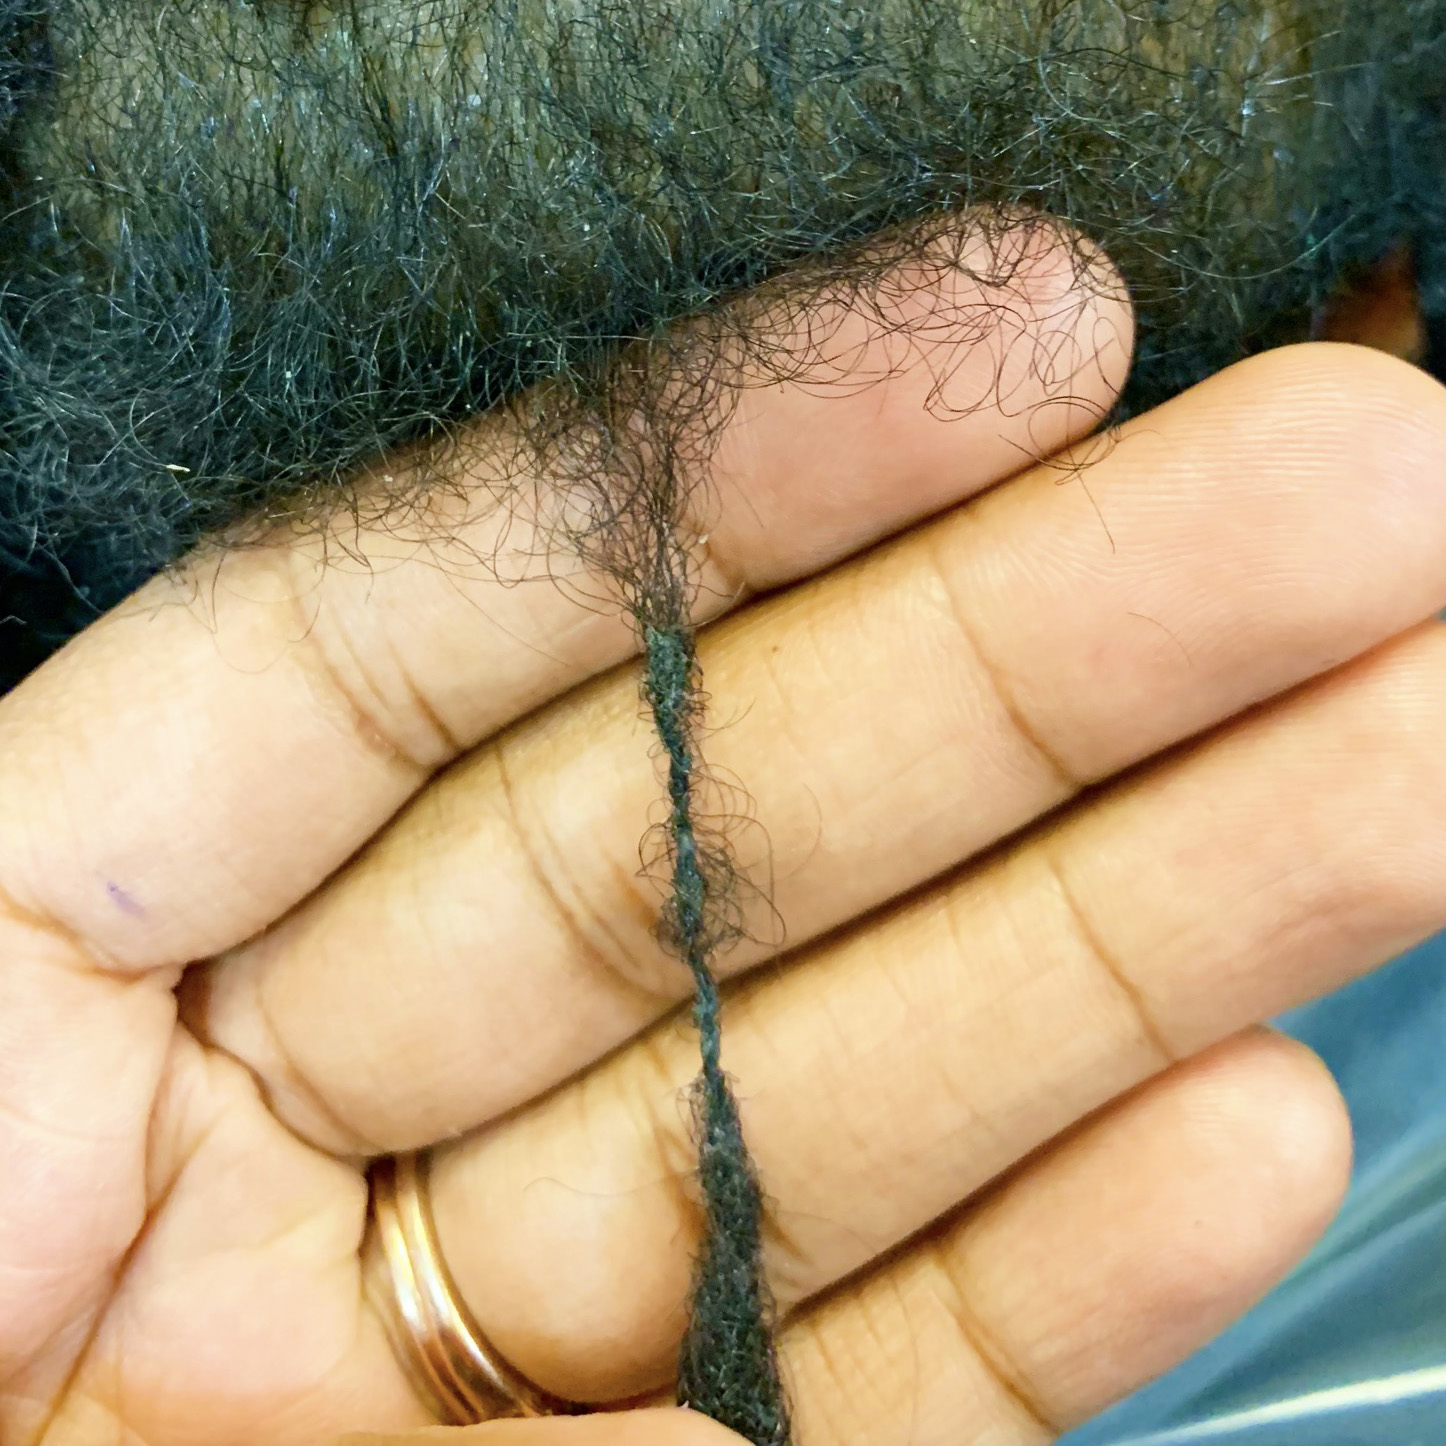 Thinning Roots of Locs from Not Retwisting